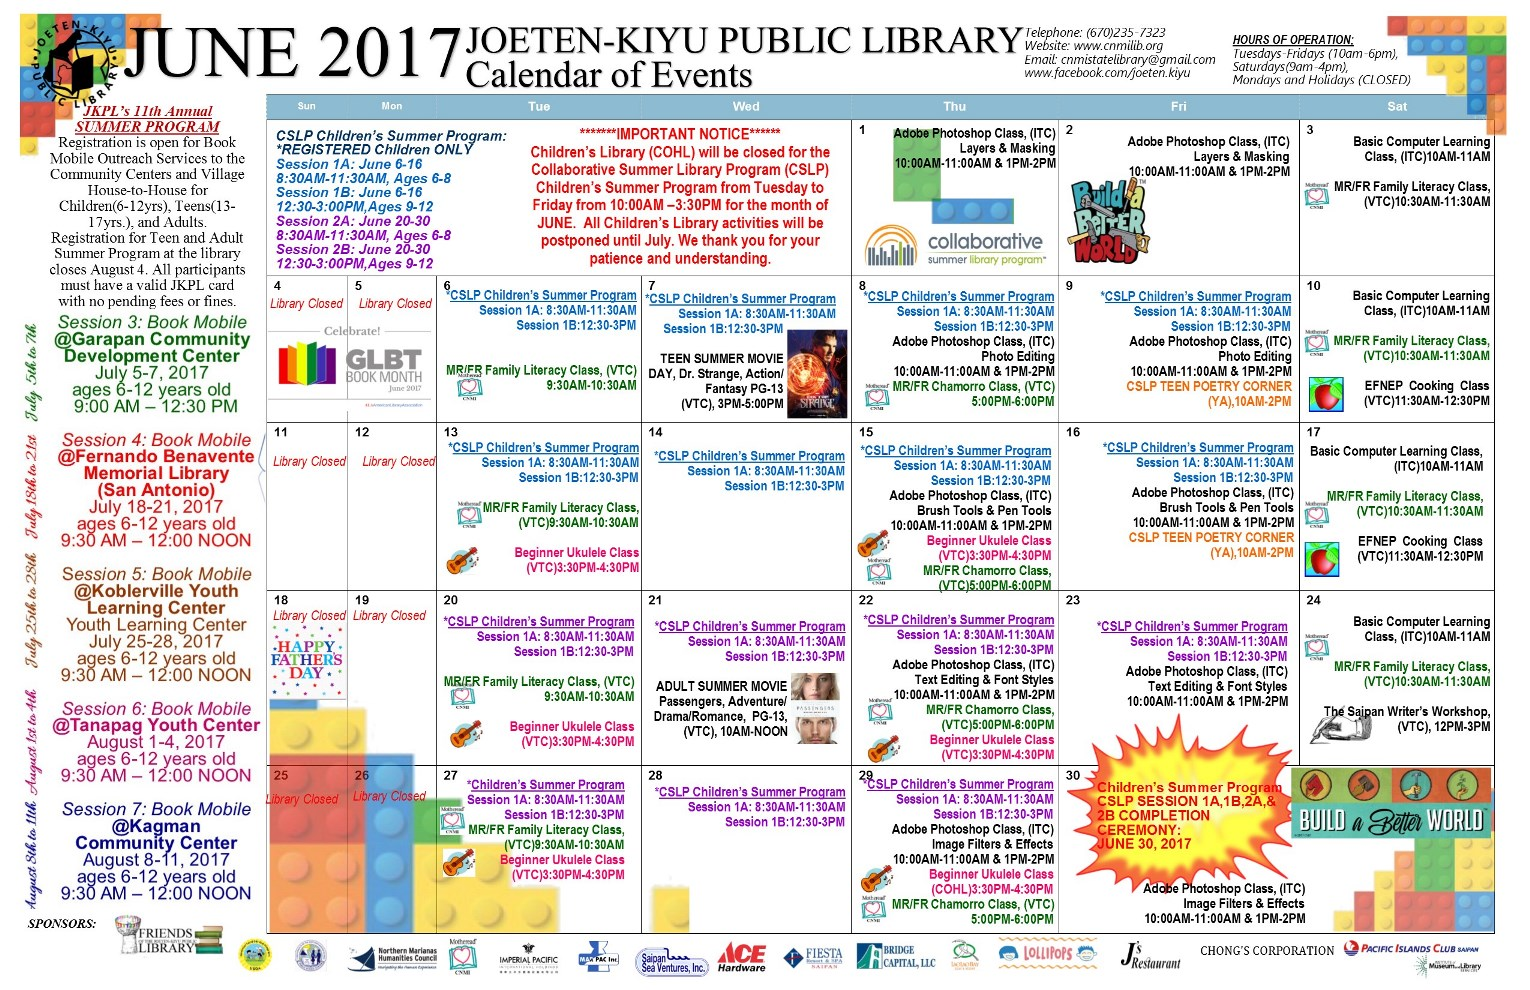 June Calendar Events : June calendar of events joeten kiyu public library